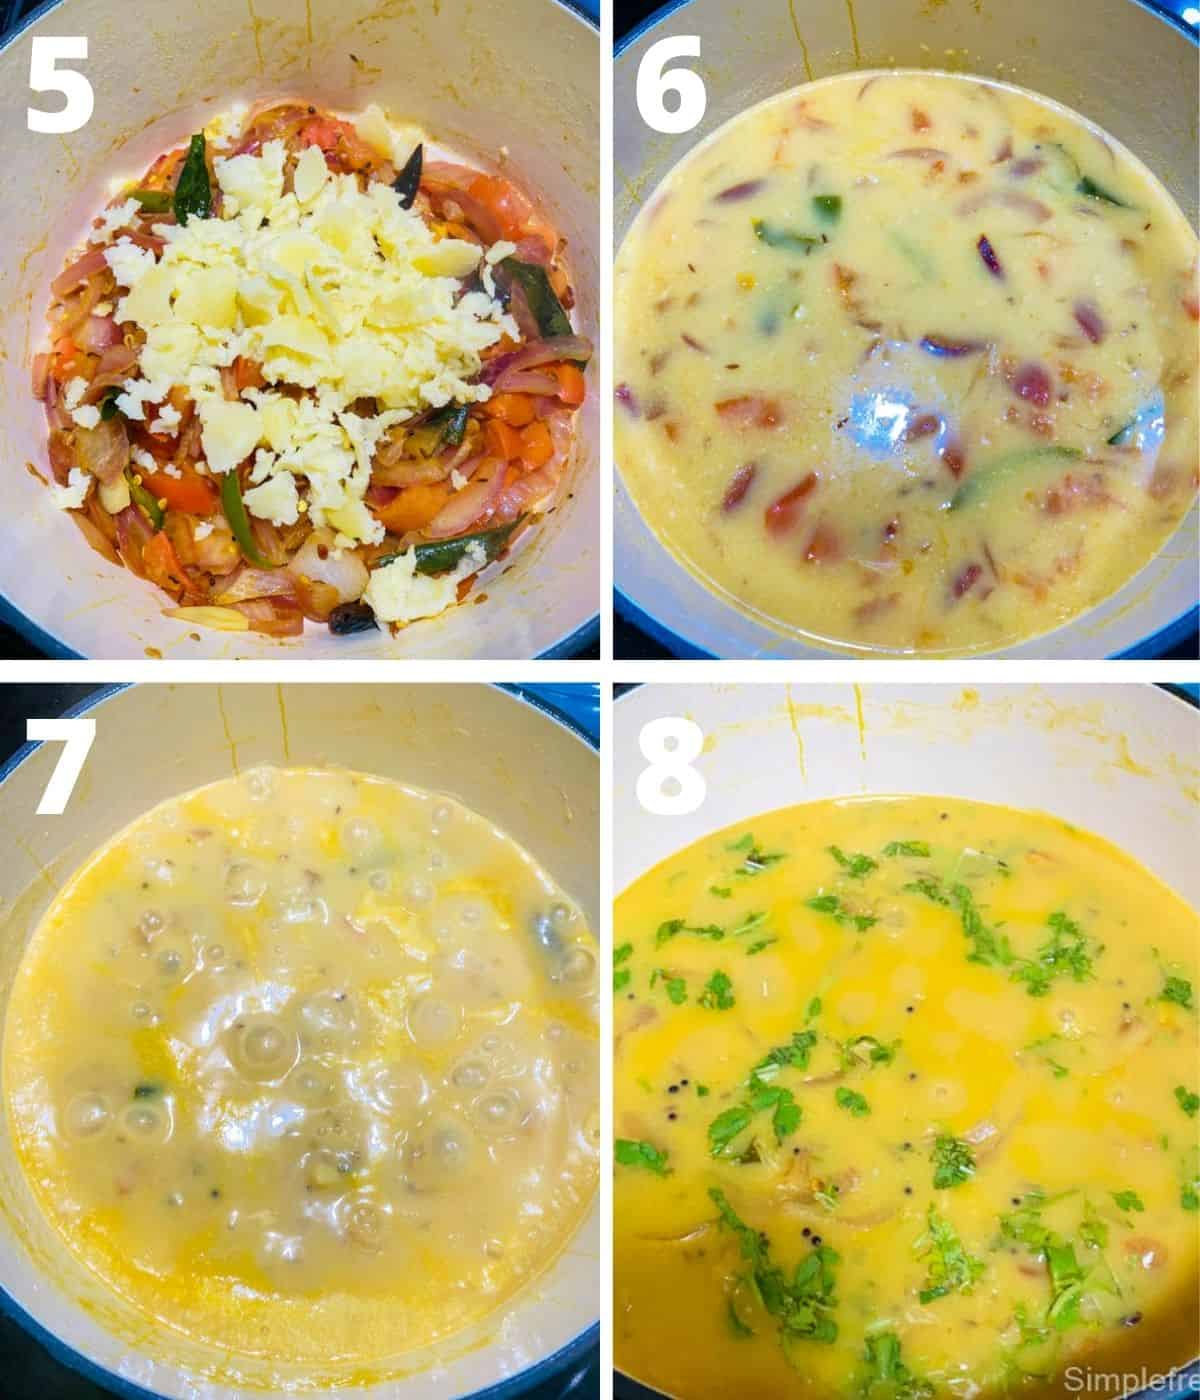 This image shows the collage of step by step pictures for making Bombay chutney. This image shows the last 4 steps until the chutney is ready to serve with cilantro on top.